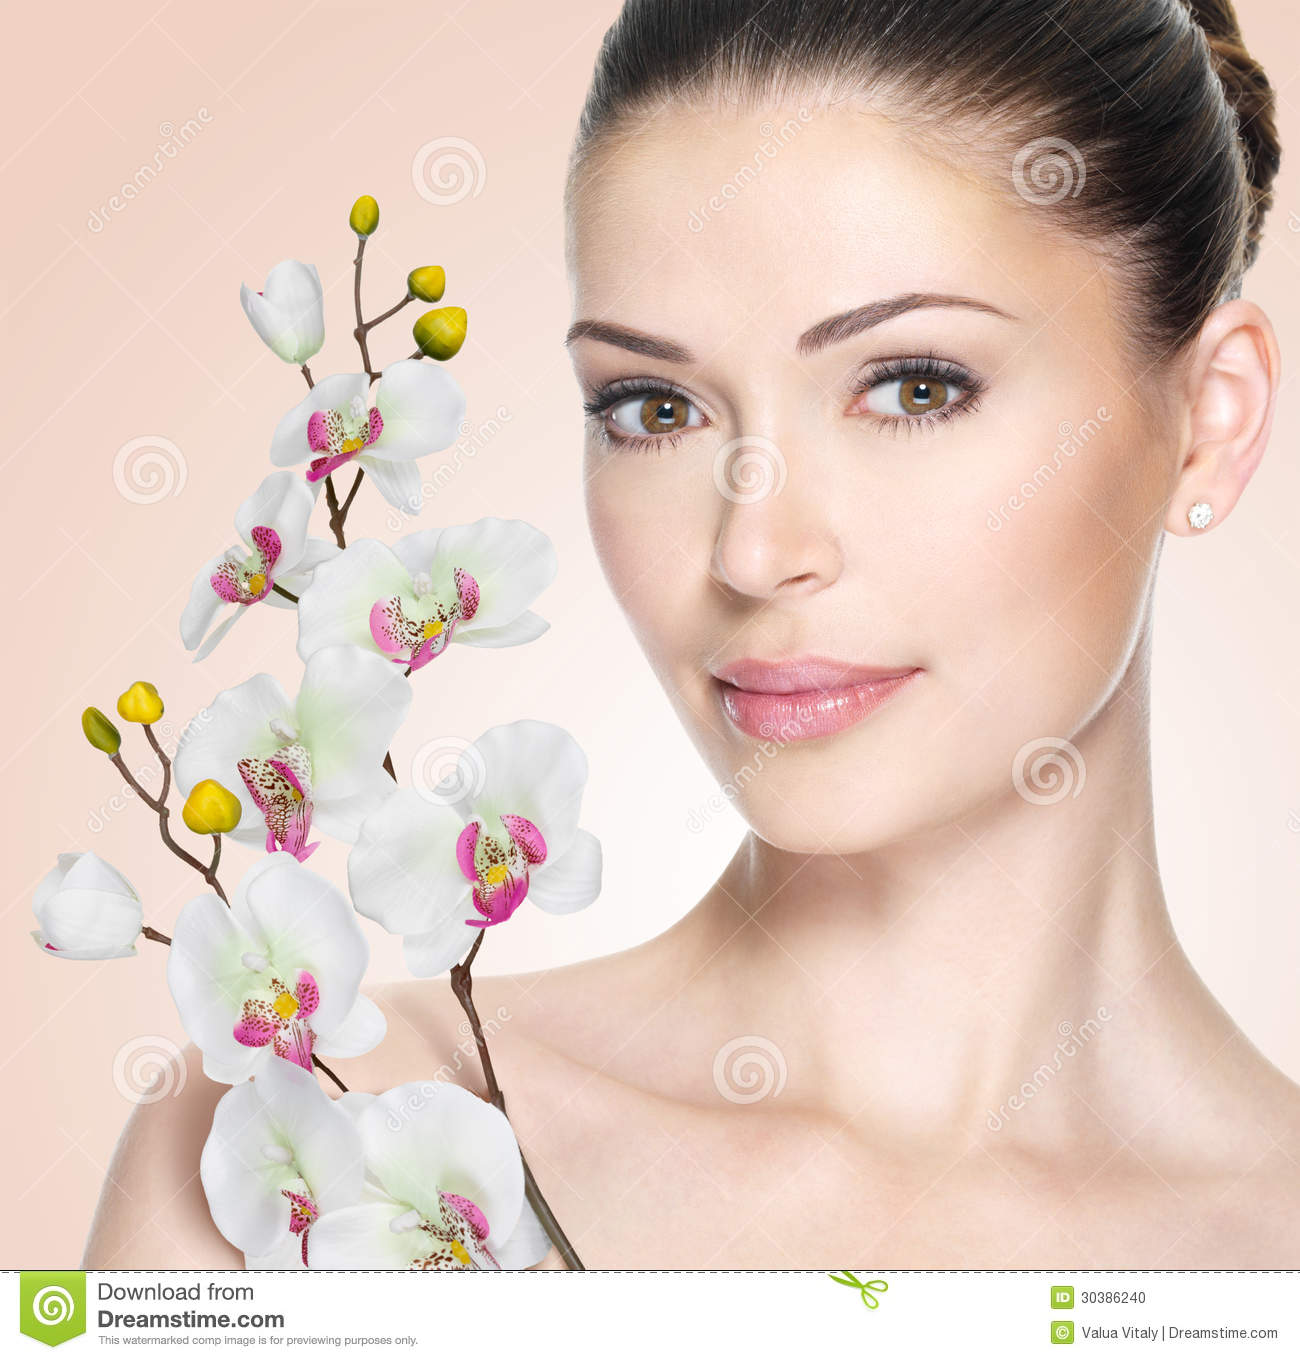 Frangipani spa flowers stock photo image 14654190 - Adult Woman With Beautiful Face And Flowers Stock Photo